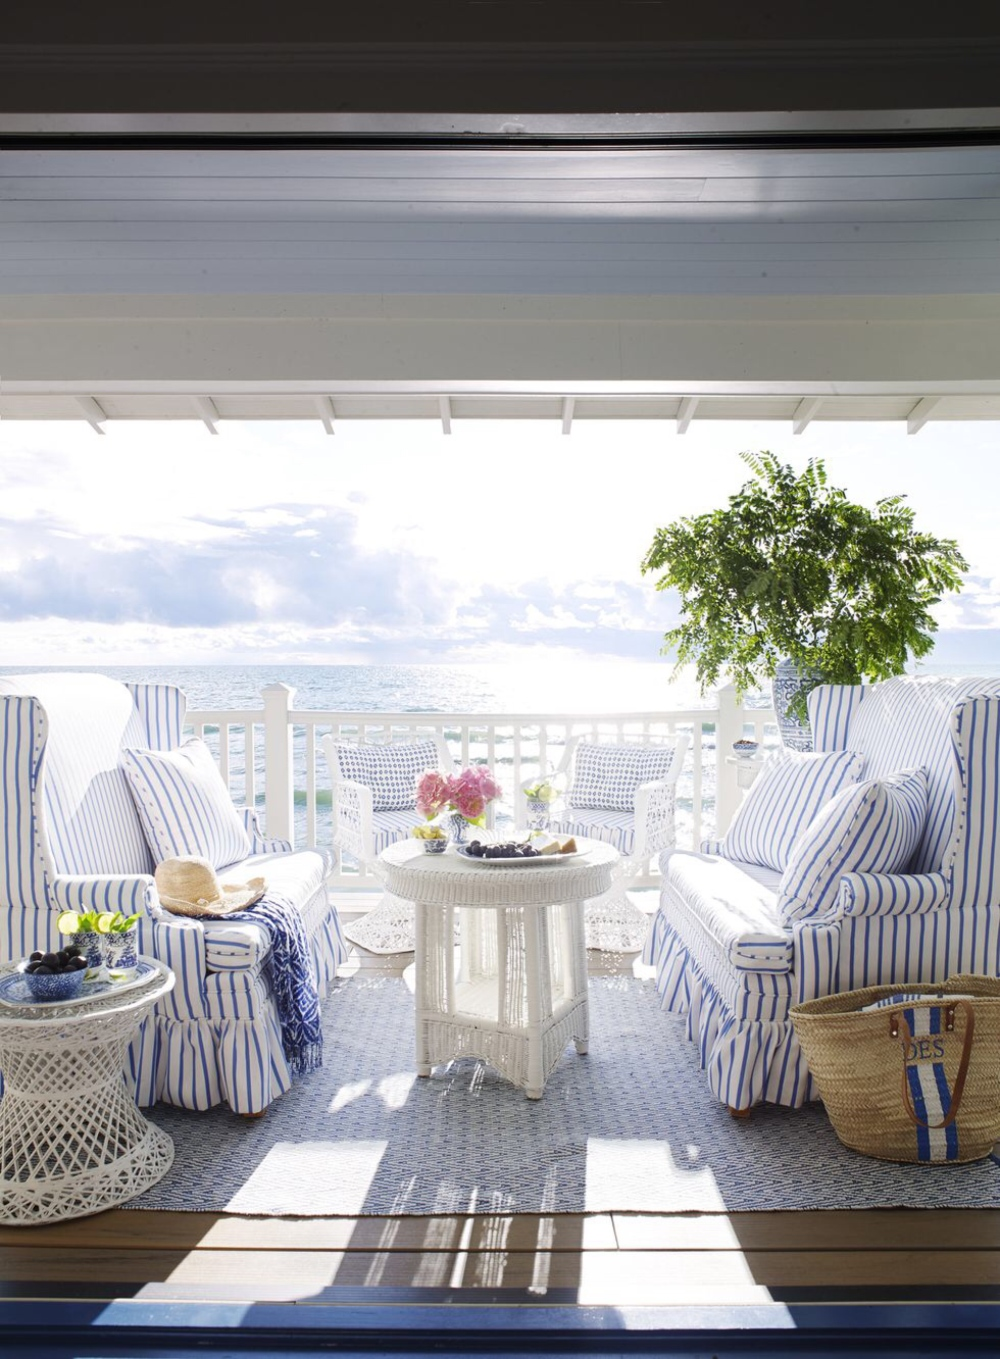 Article_from_House_Beautiful_summer_home_in_Ludington_Michigan_decor_decoration_blue_white_beach_decor_interiors_and_more_vacations_980_1332.jpg